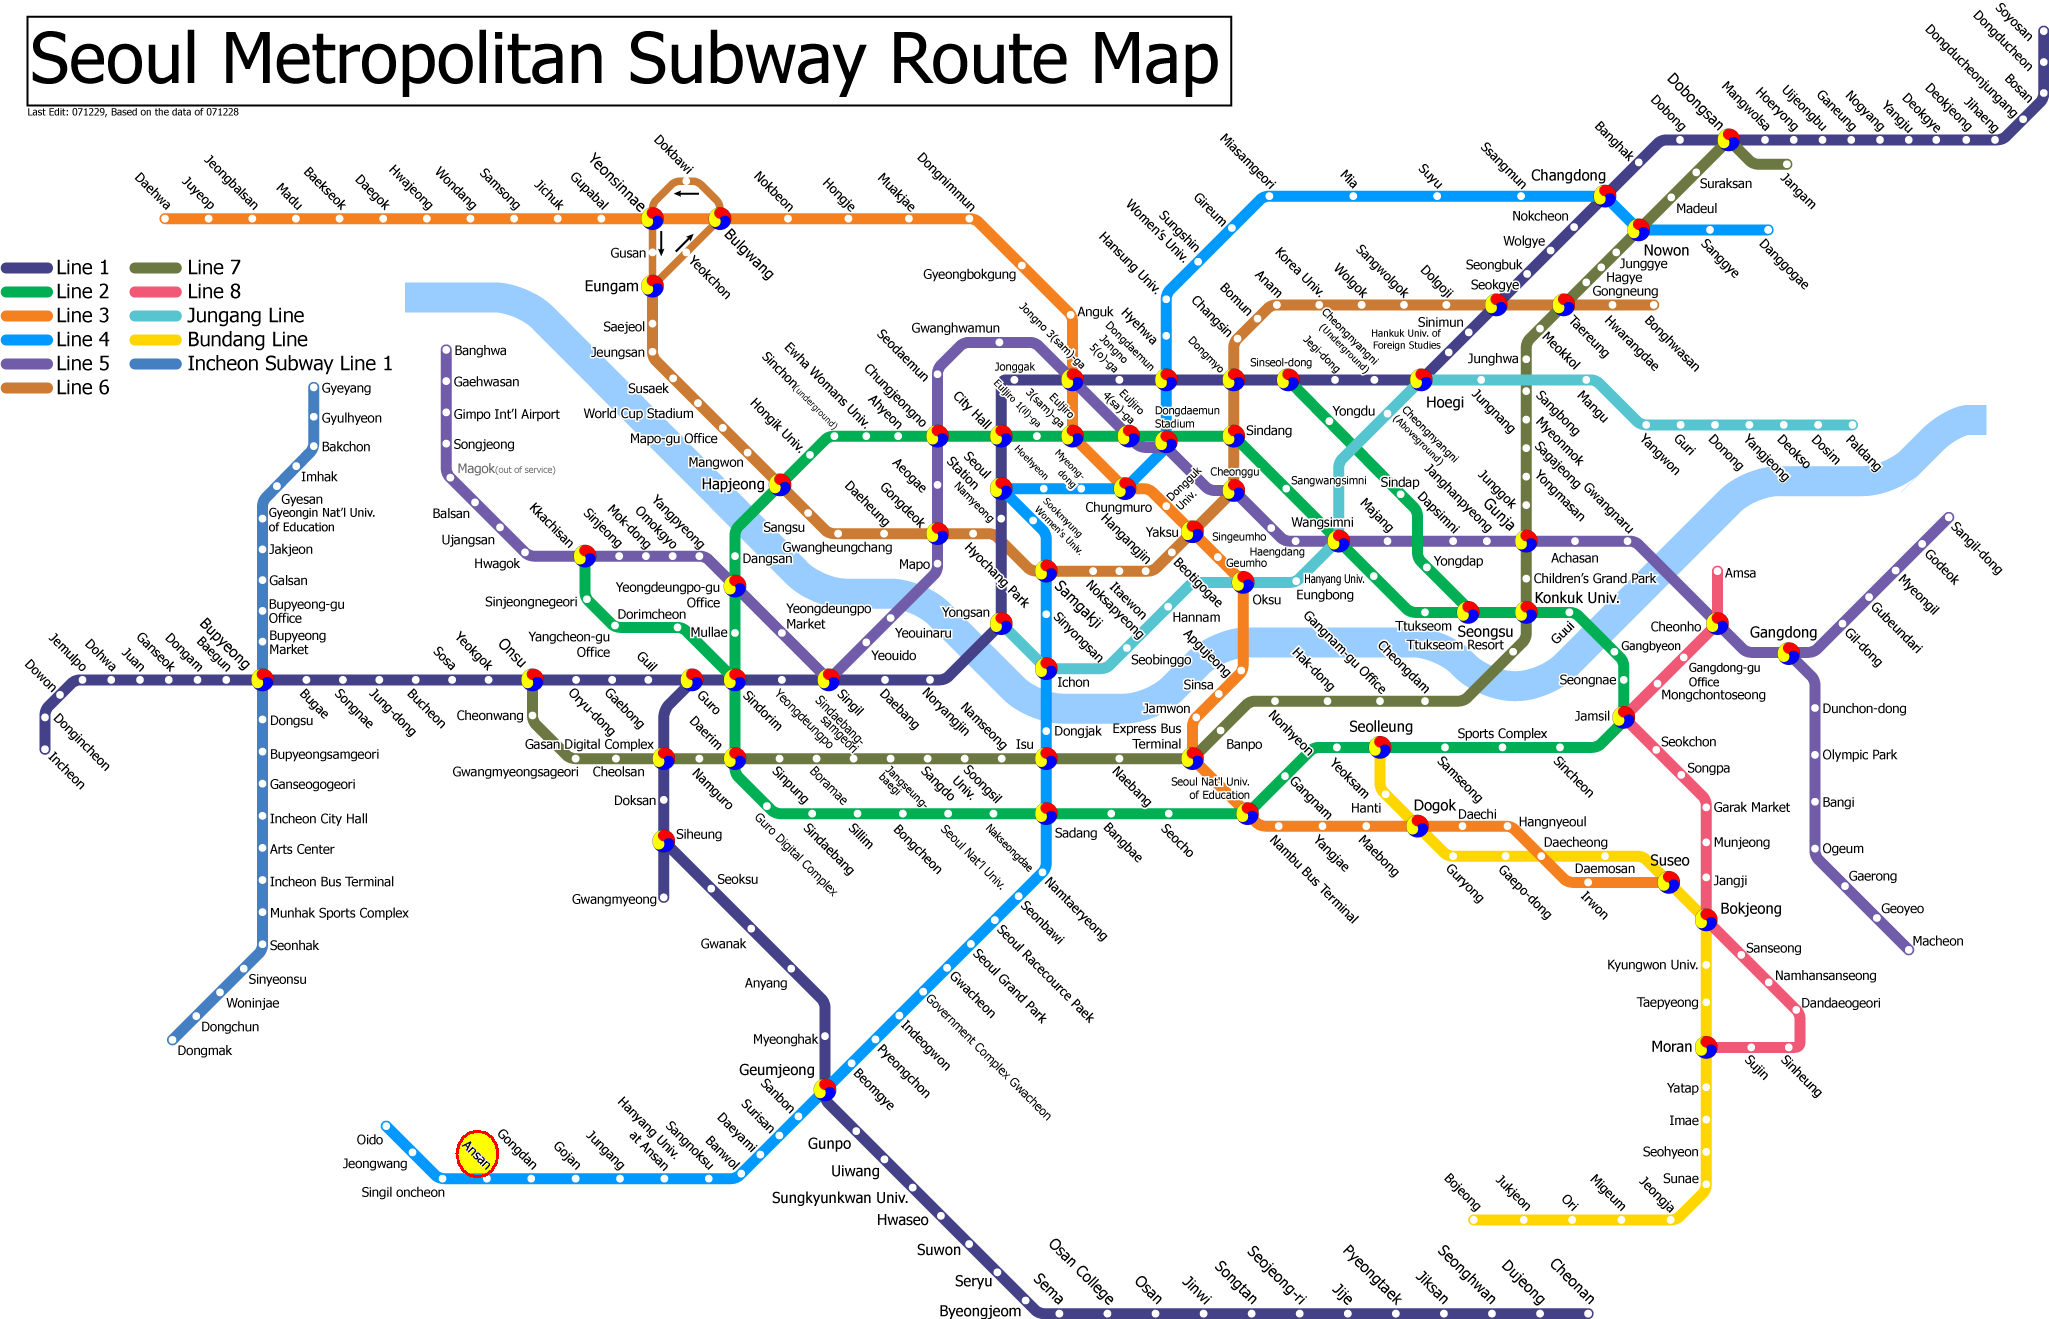 Eoul Subway Map.Seoul Subway Map Seoul Korea In 2019 Subway Map Seoul Map